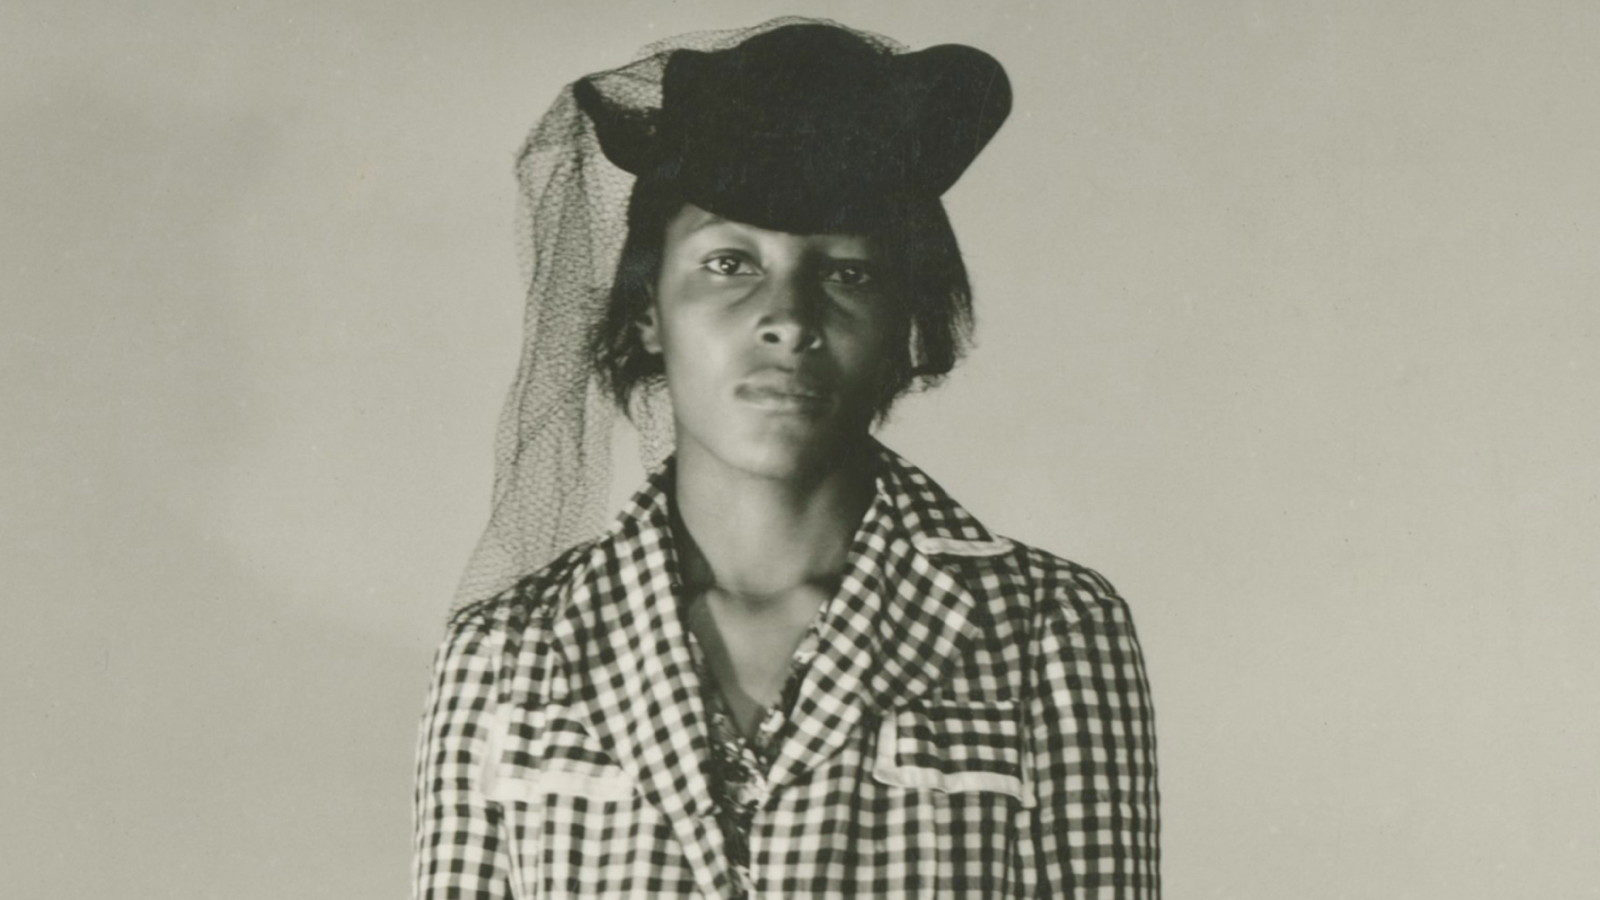 'The Rape of Recy Taylor' explores the little-known terror campaign against black women